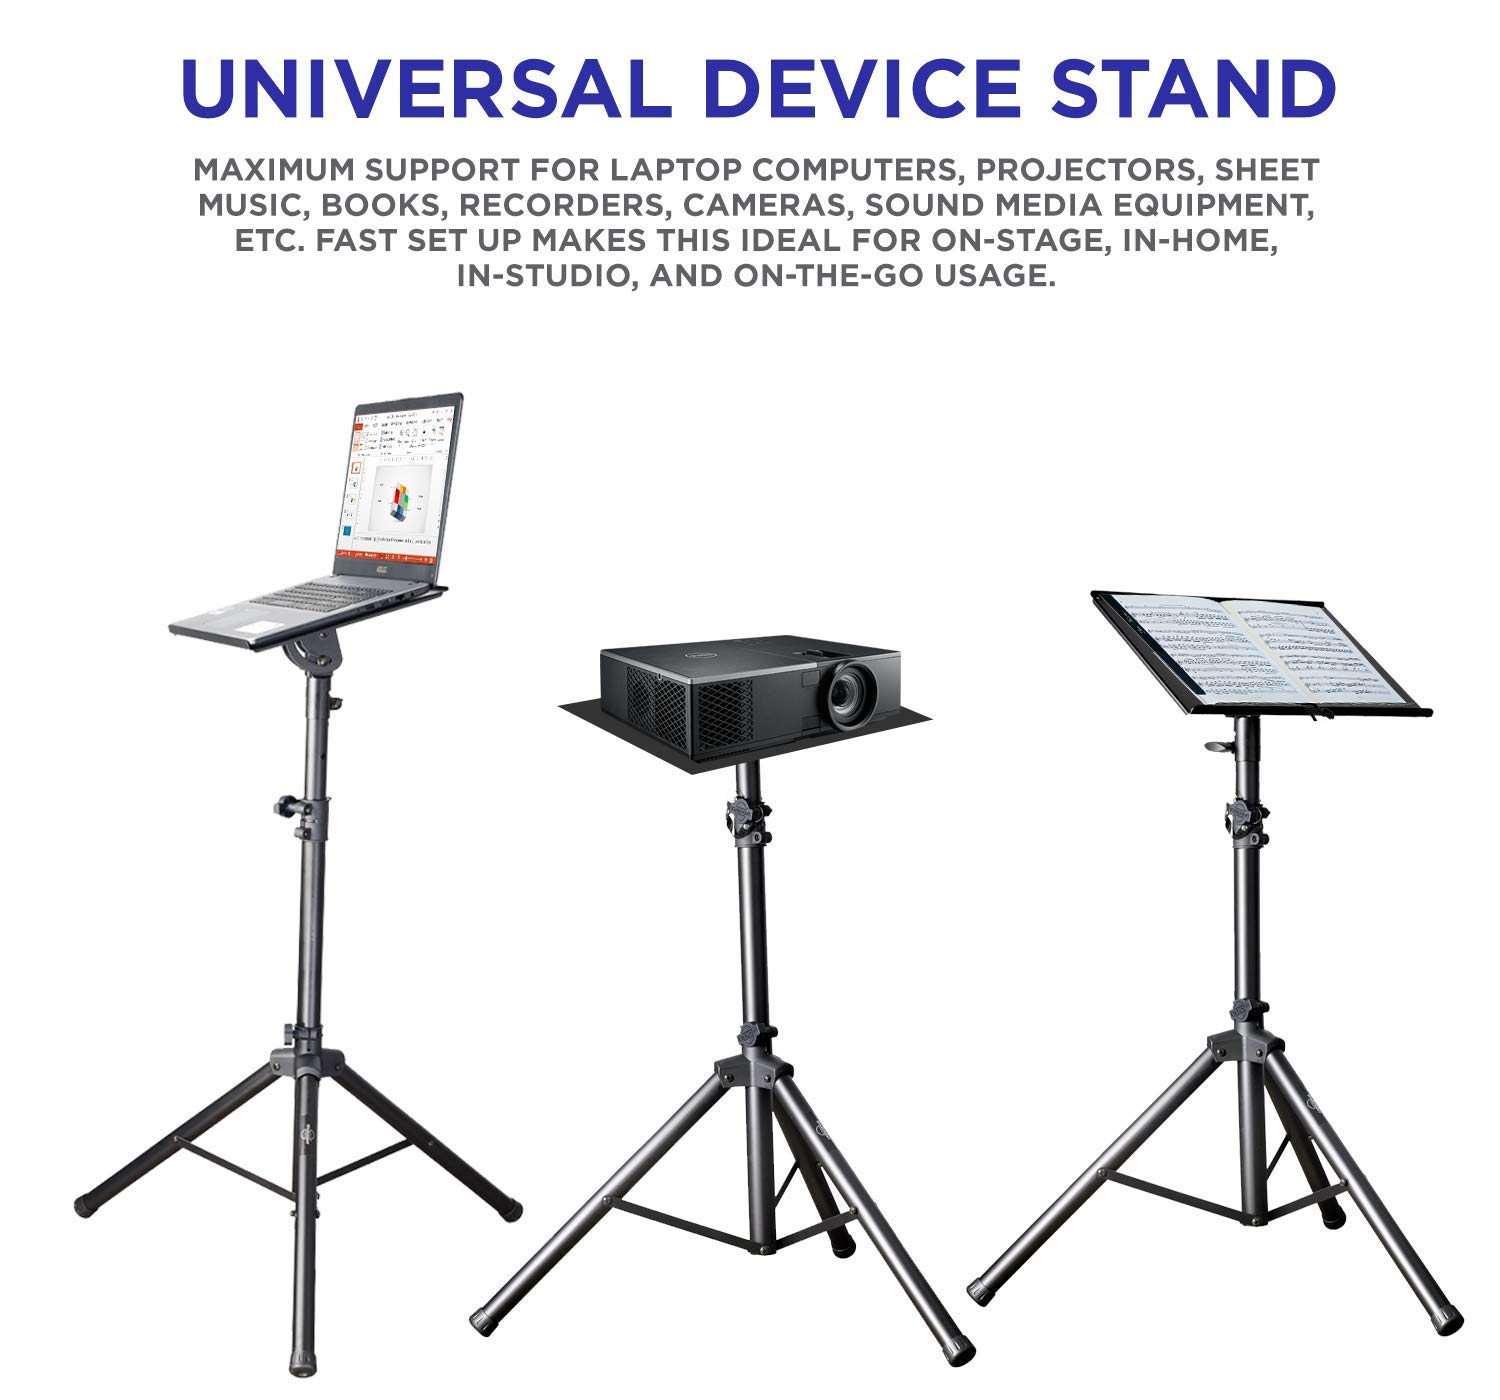 Professional Adjustable 32.3'' - 52'' Laptop DJ Mixer Tripod Stand | Lightweight & Portable 15.3'' x 12.2'' Tilted Tri-Pod Tray for Processors, Audio Controllers & Tablets | Raised Edges for Protection by STARUMENT (Image #7)